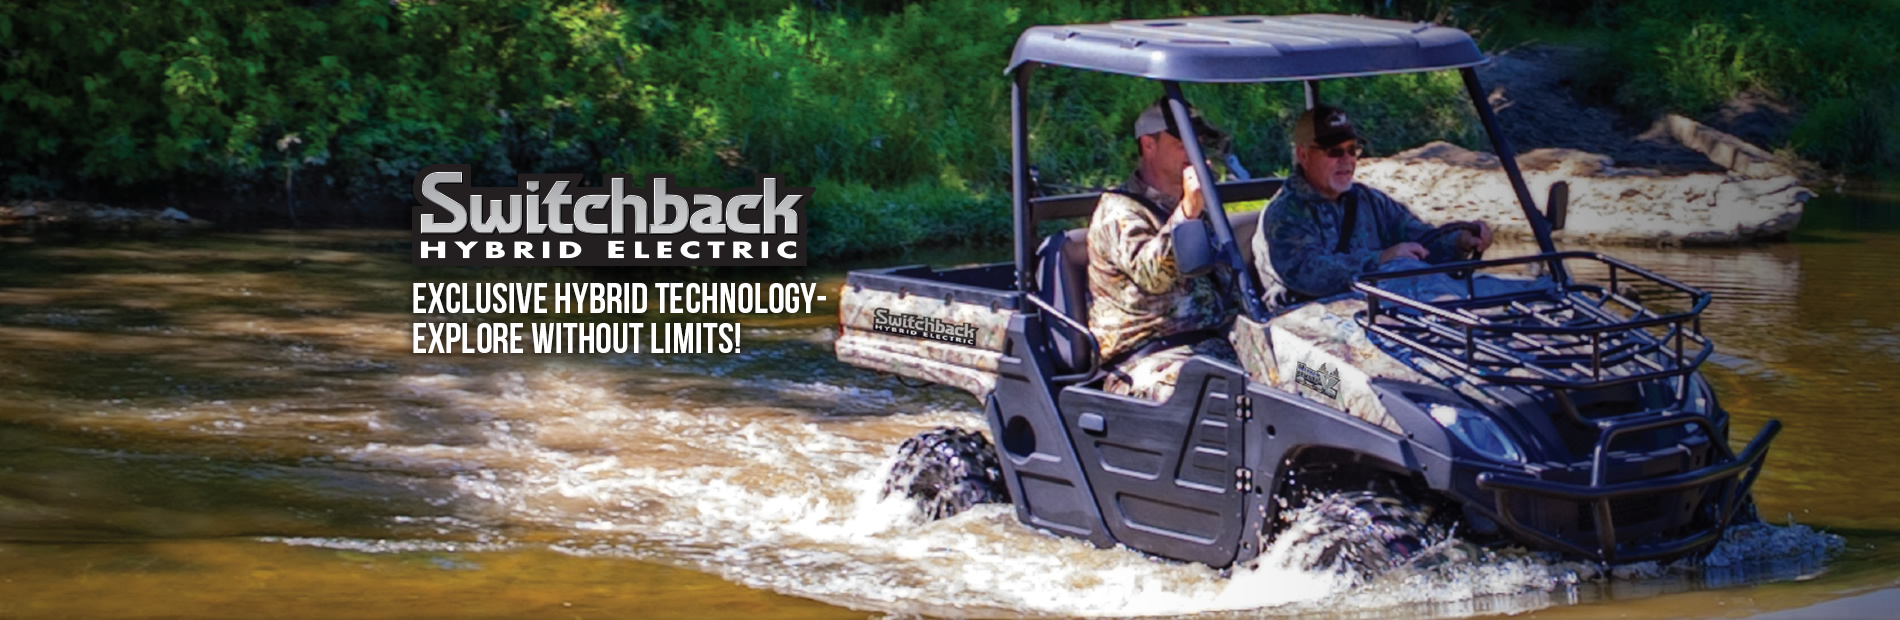 HuntVe Switchback™ 4x4 Hybrid Electric